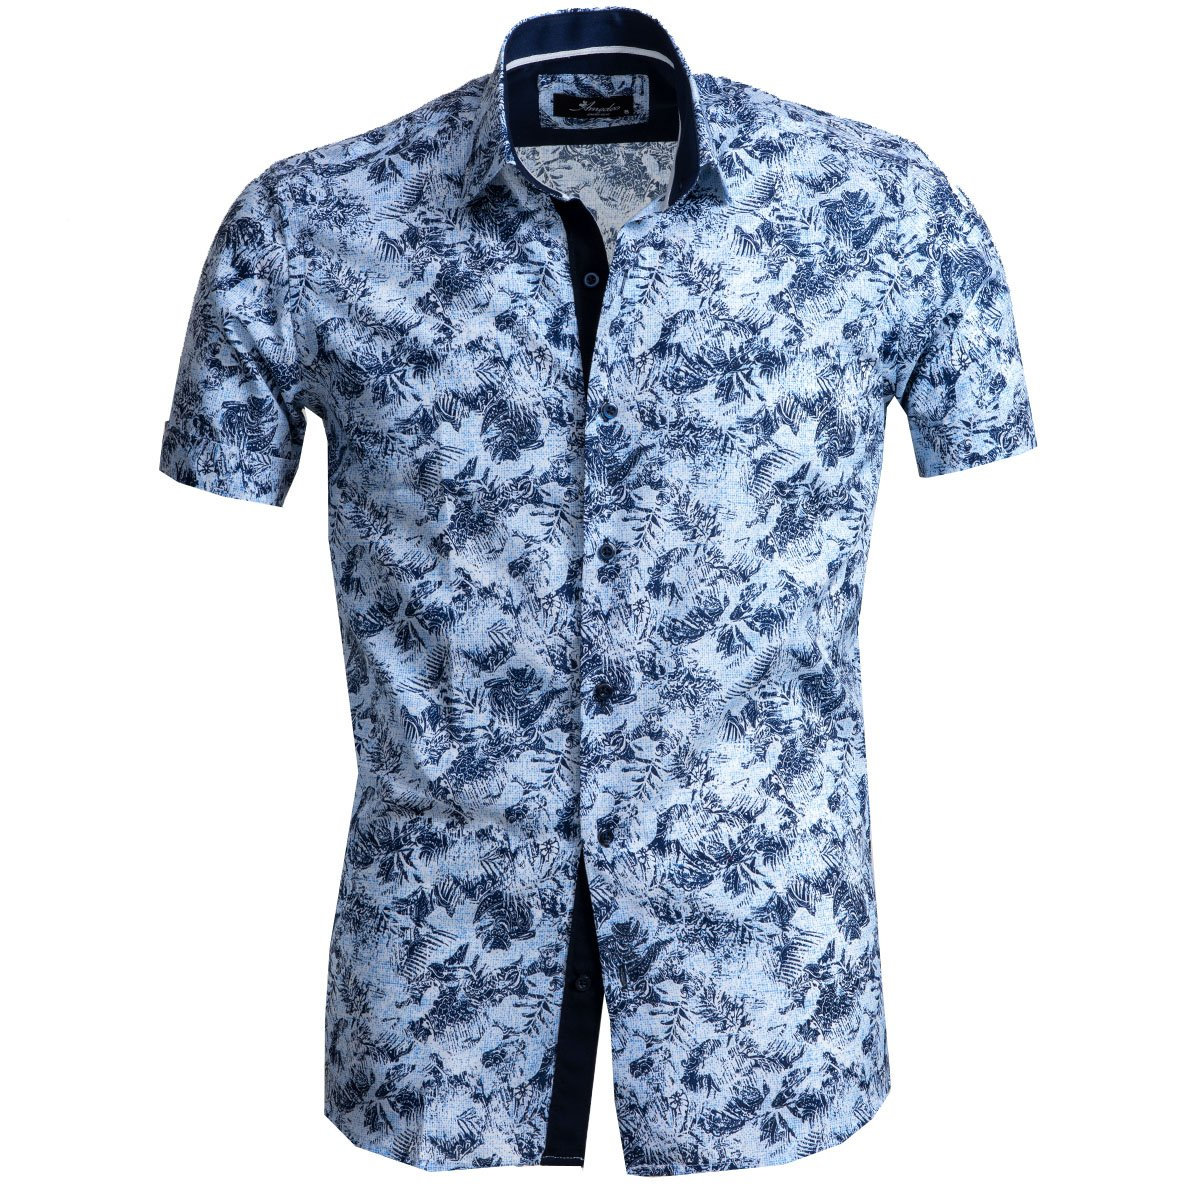 Men's Button down Tailor Fit Soft 100% Cotton Short Sleeve Dress Shirt Light Blue Floral Paisley casual And Formal - Amedeo Exclusive